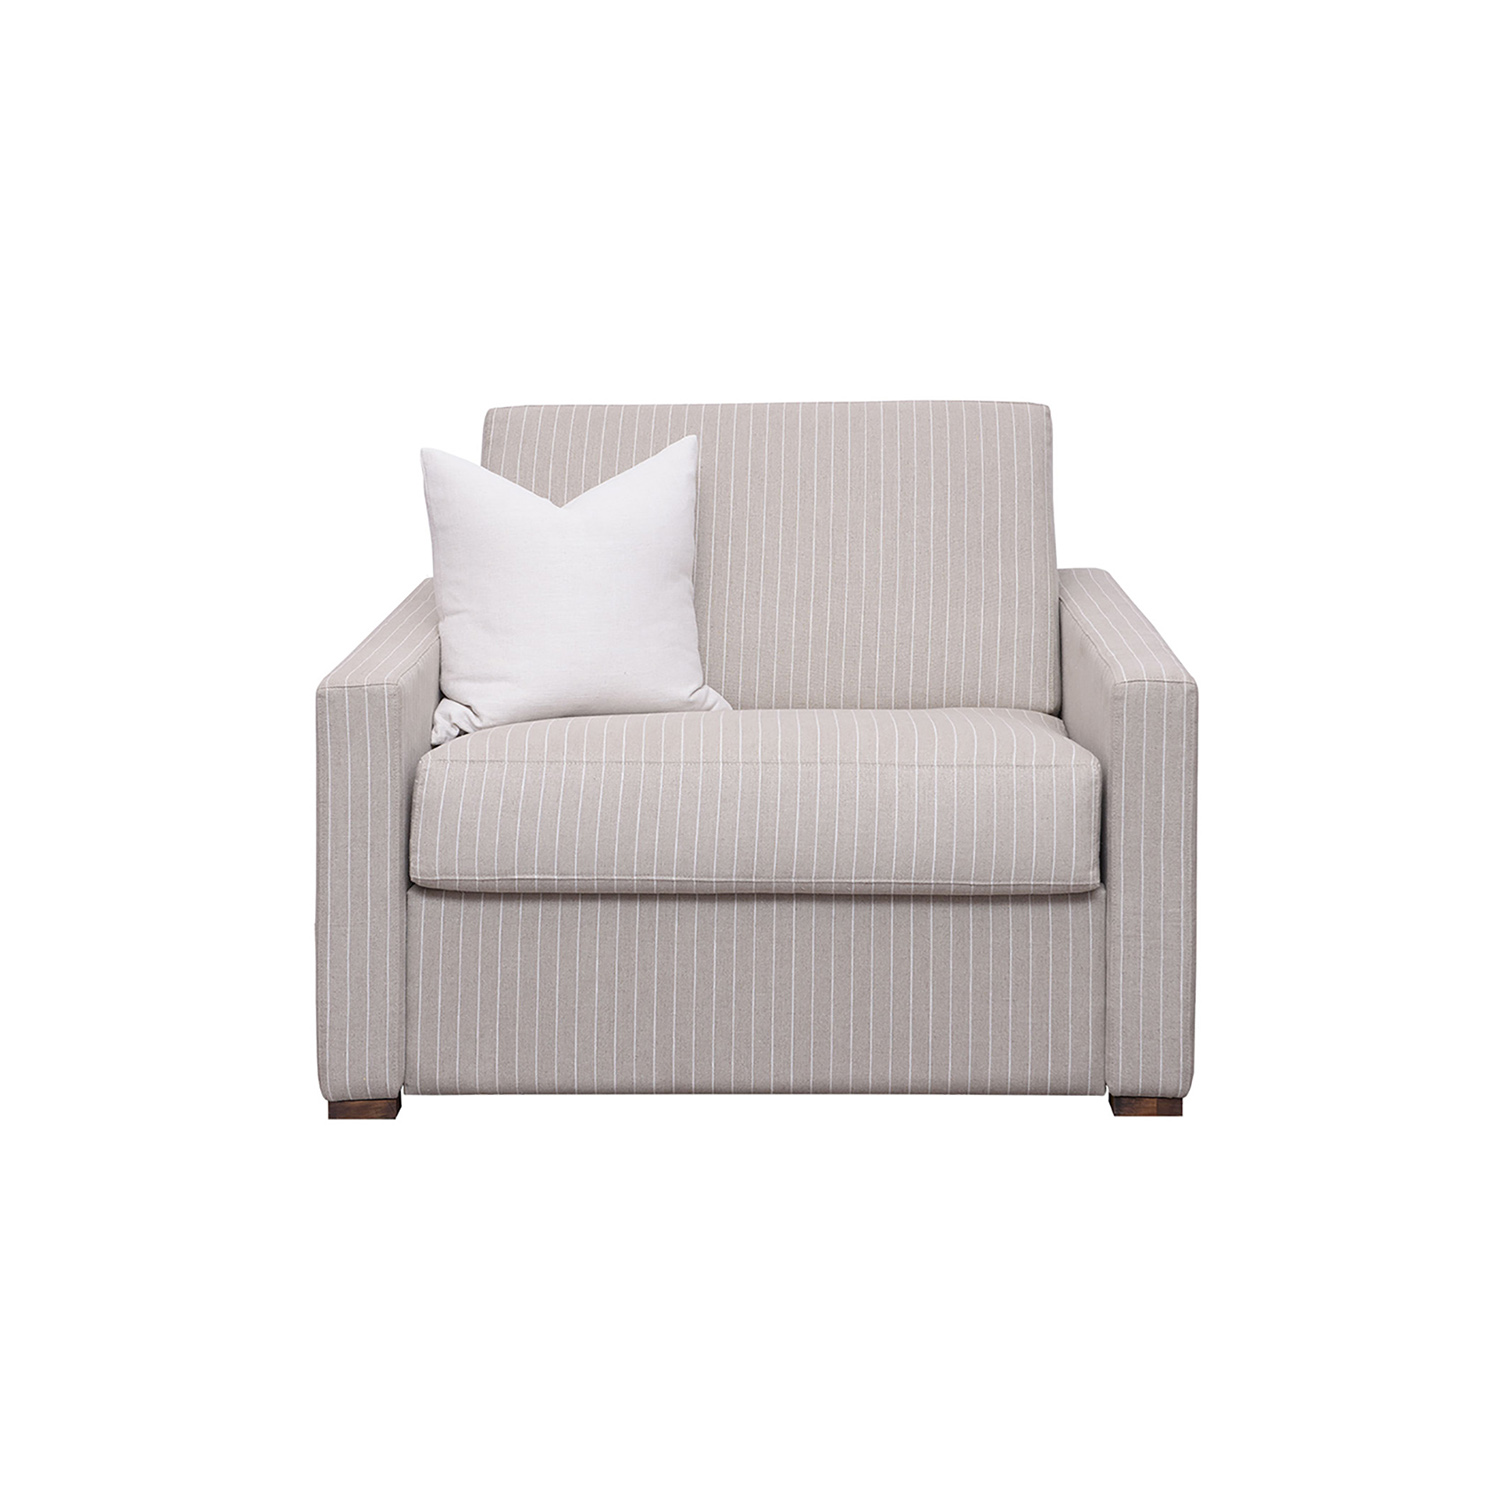 Sacha European Chair Bed Sofa Bed